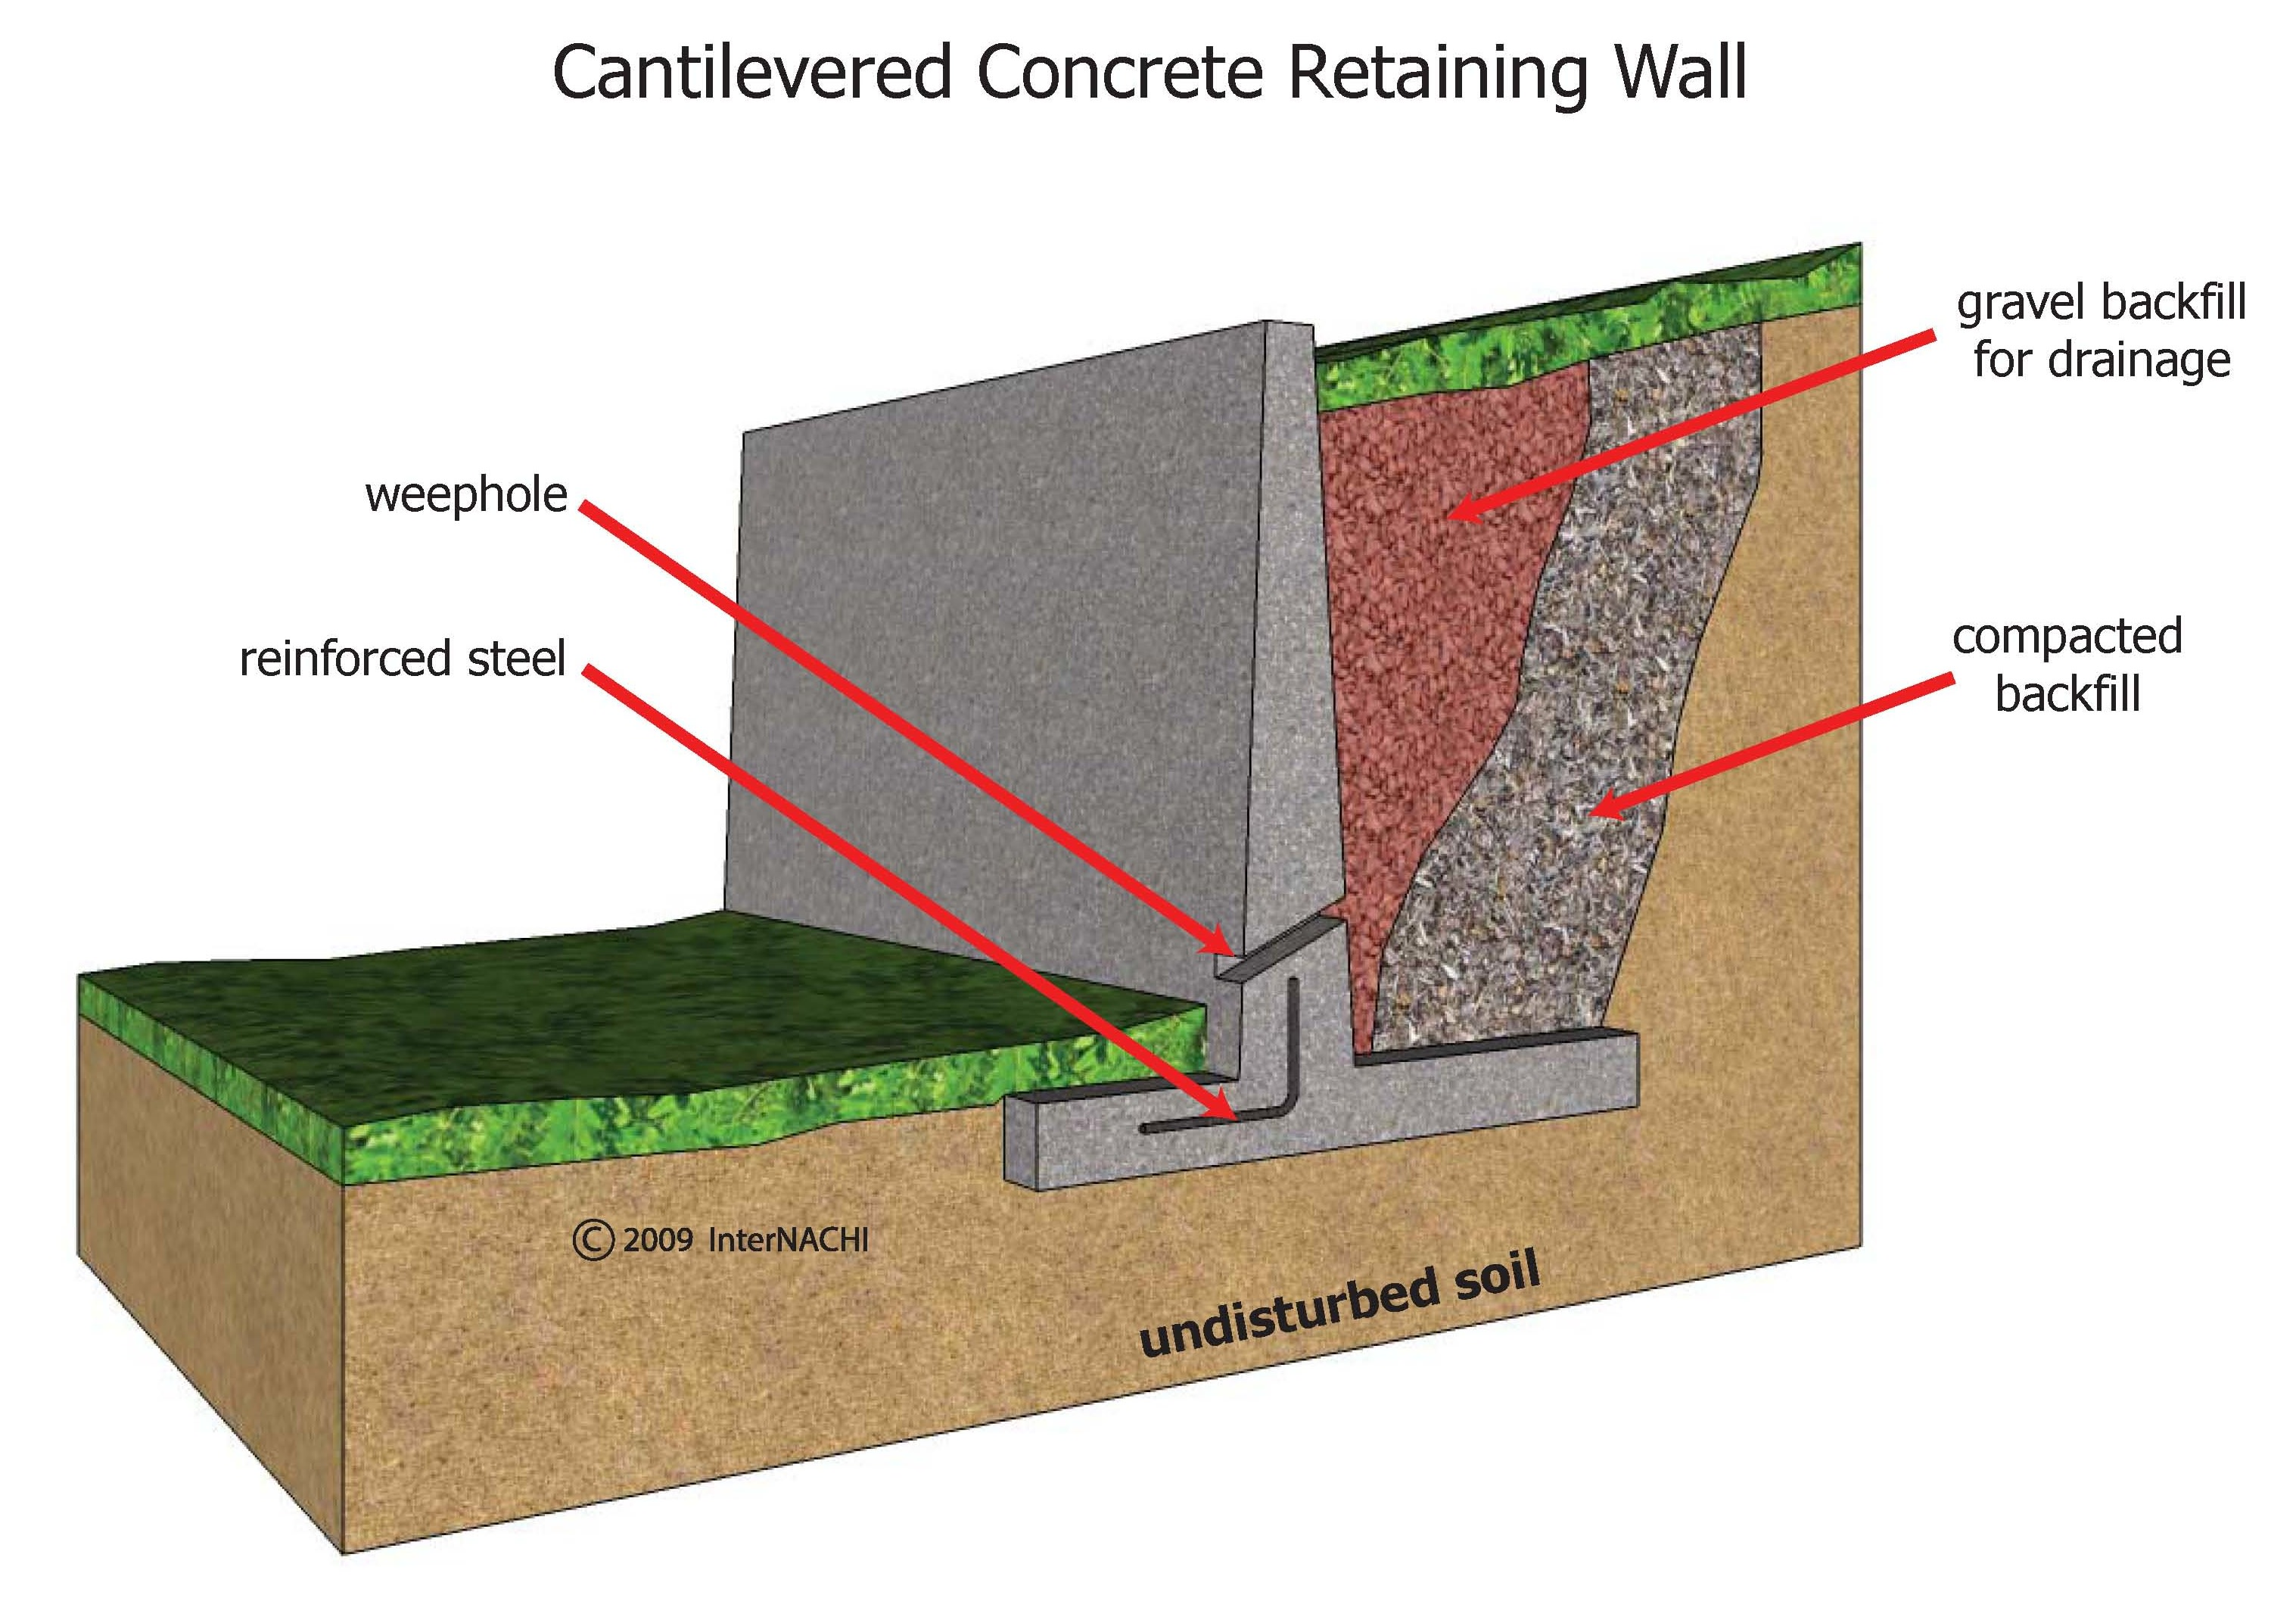 Cantilevered concrete retaining wall.